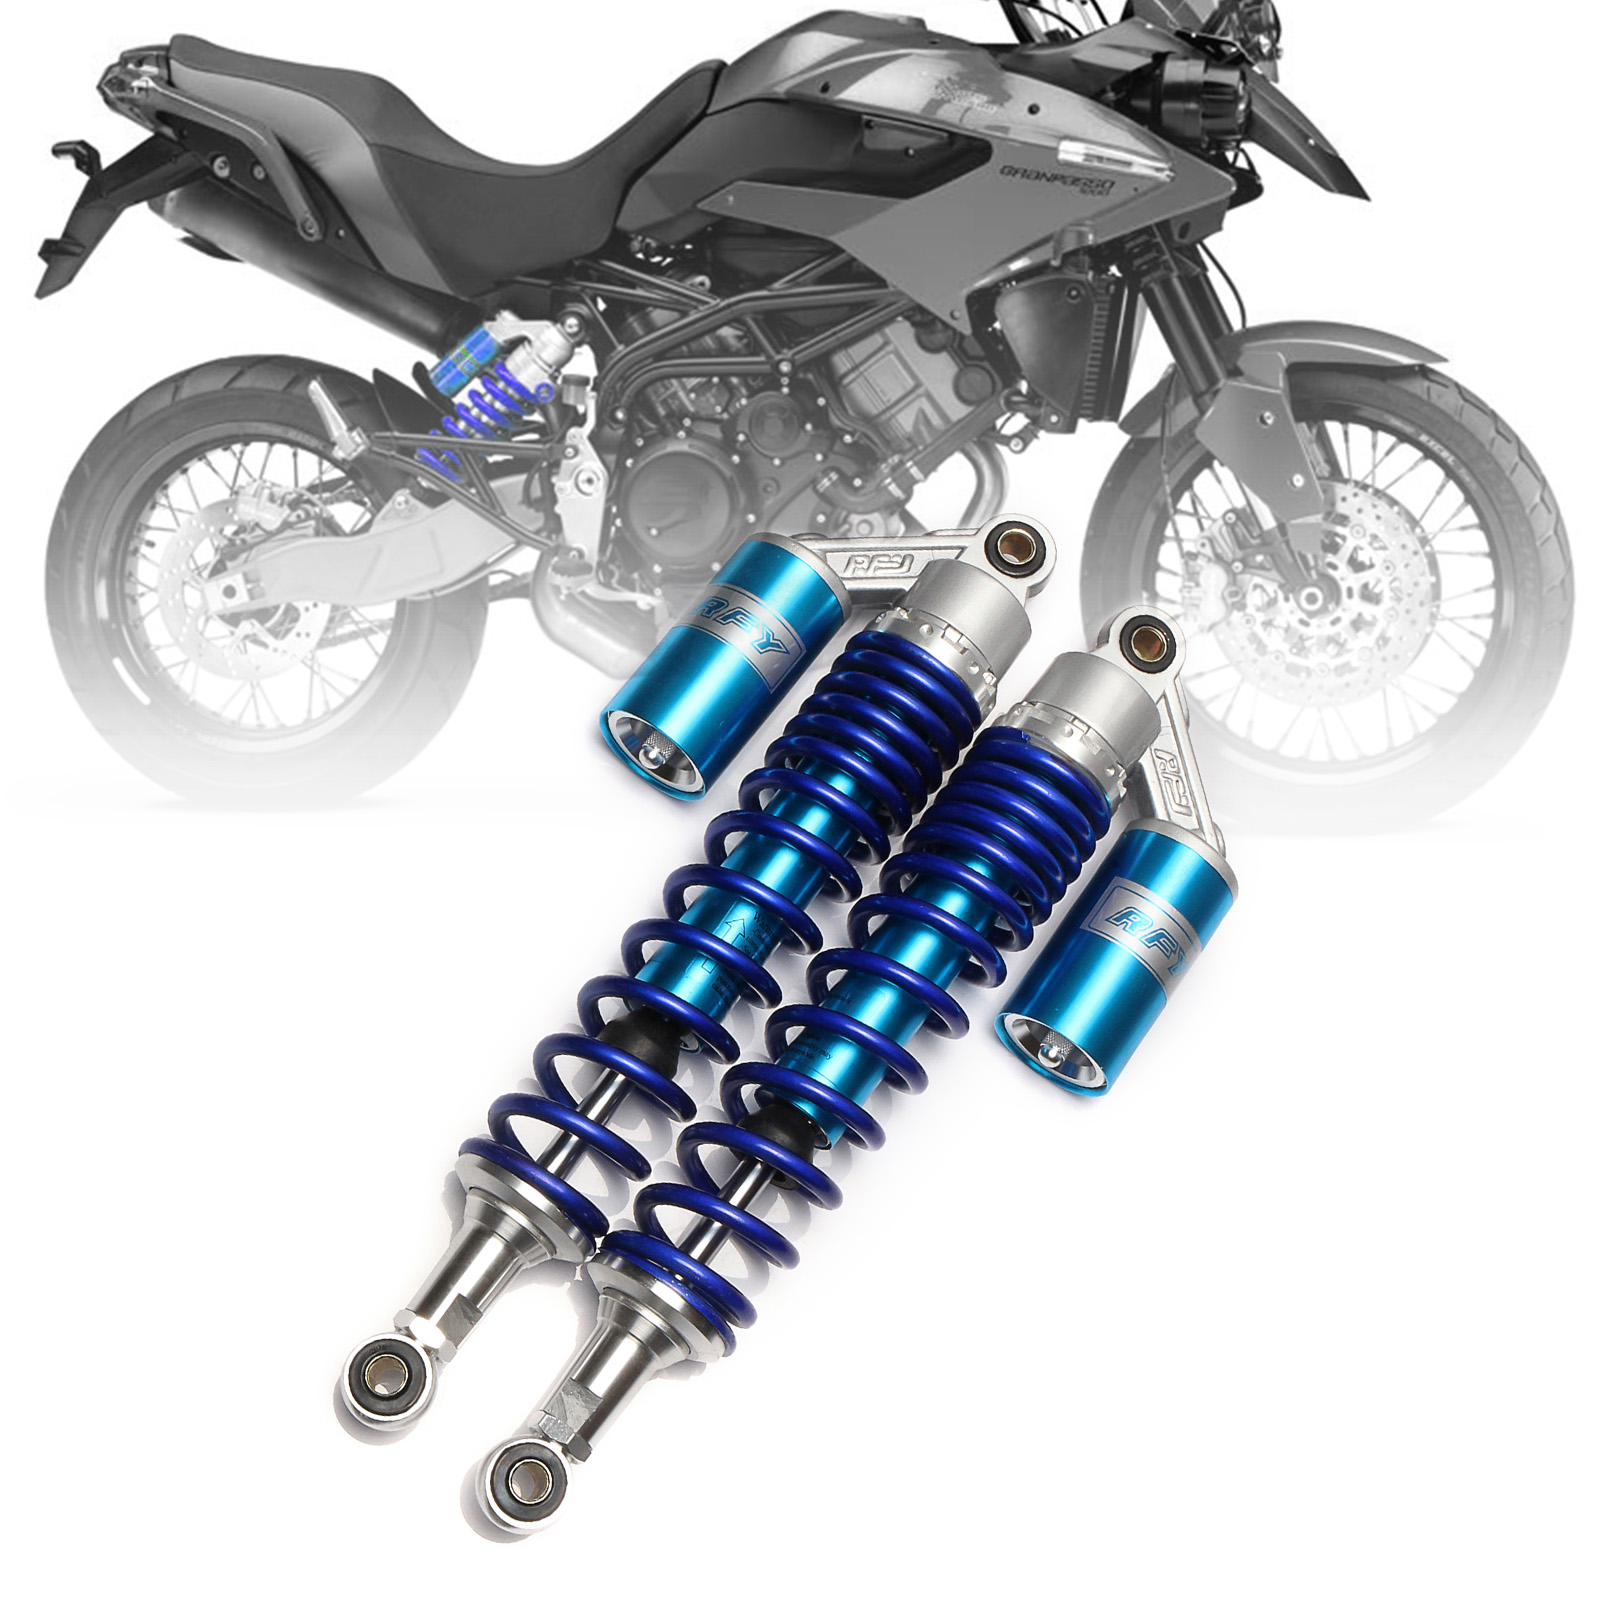 Universal 15 3/4 400mm Motorcycle Air Shock Absorber Rear Suspension For Yamaha Motor Scooter ATV Quad Blue